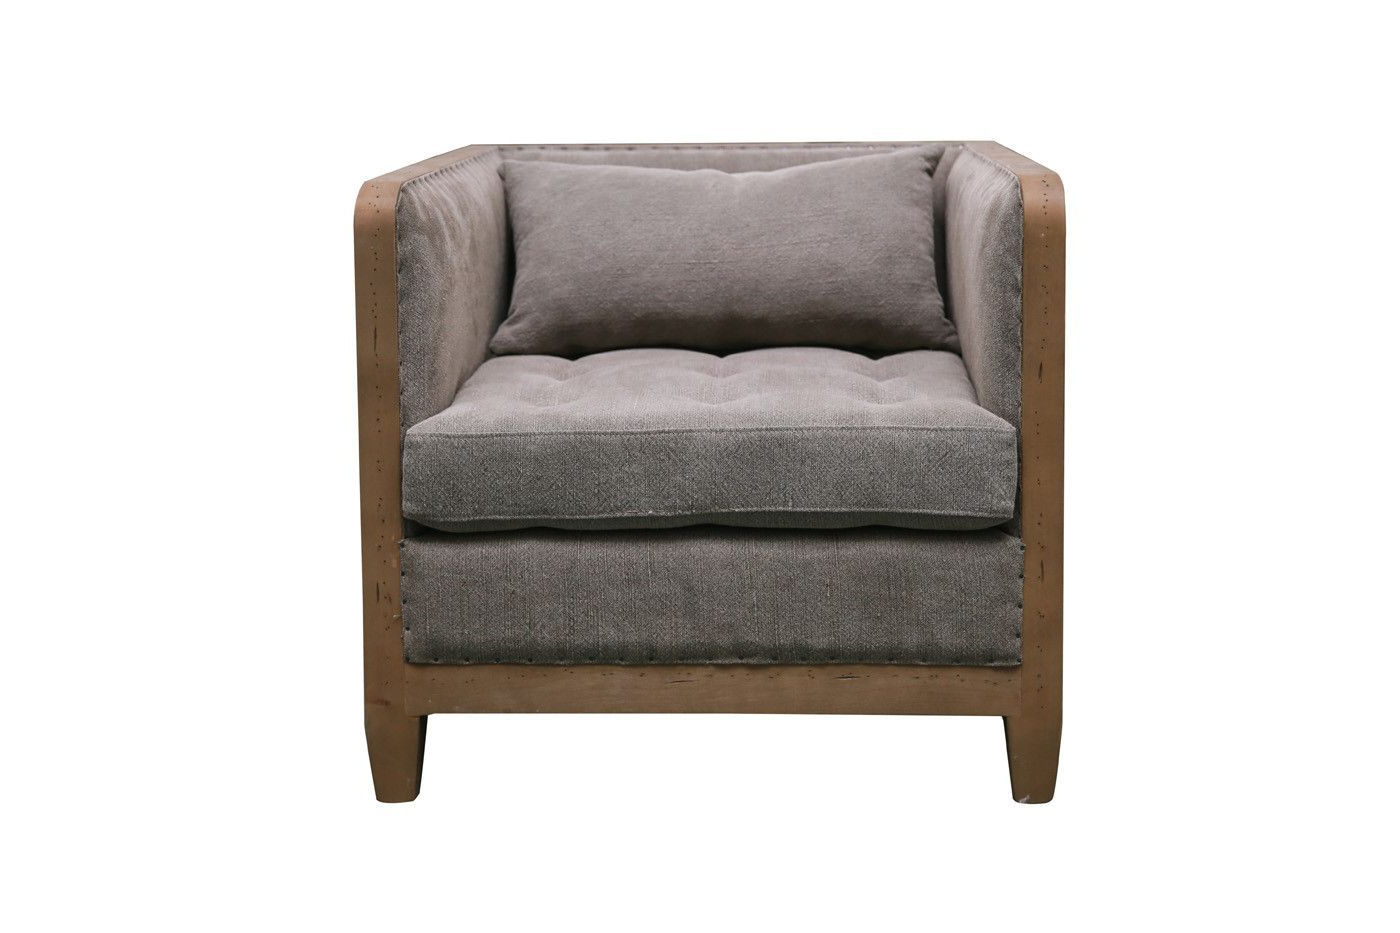 [%Cosette Club Chair Grey Birch Frame 50% Linen | Products | Pinterest For Preferred Cosette Leather Sofa Chairs|Cosette Leather Sofa Chairs For Favorite Cosette Club Chair Grey Birch Frame 50% Linen | Products | Pinterest|Most Current Cosette Leather Sofa Chairs With Cosette Club Chair Grey Birch Frame 50% Linen | Products | Pinterest|Most Up To Date Cosette Club Chair Grey Birch Frame 50% Linen | Products | Pinterest With Regard To Cosette Leather Sofa Chairs%] (View 1 of 20)